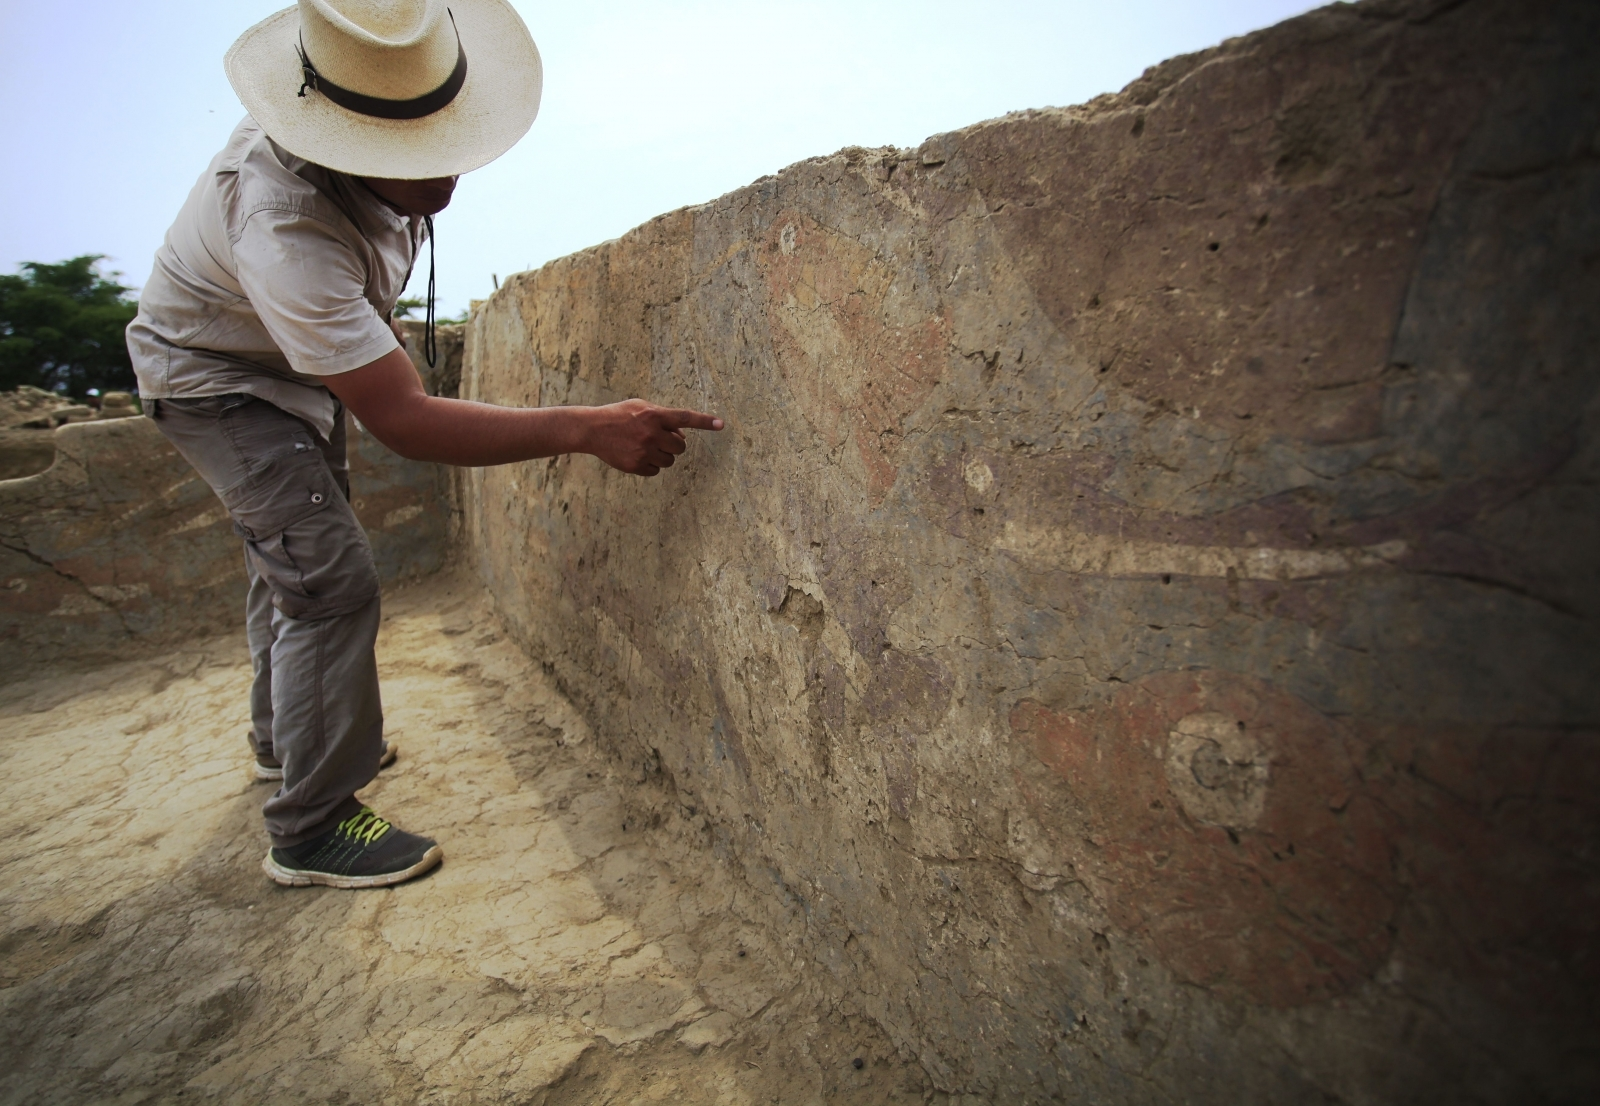 1,500-year-old painted banquet hall offers rare insight into Peru's ancient Moche culture